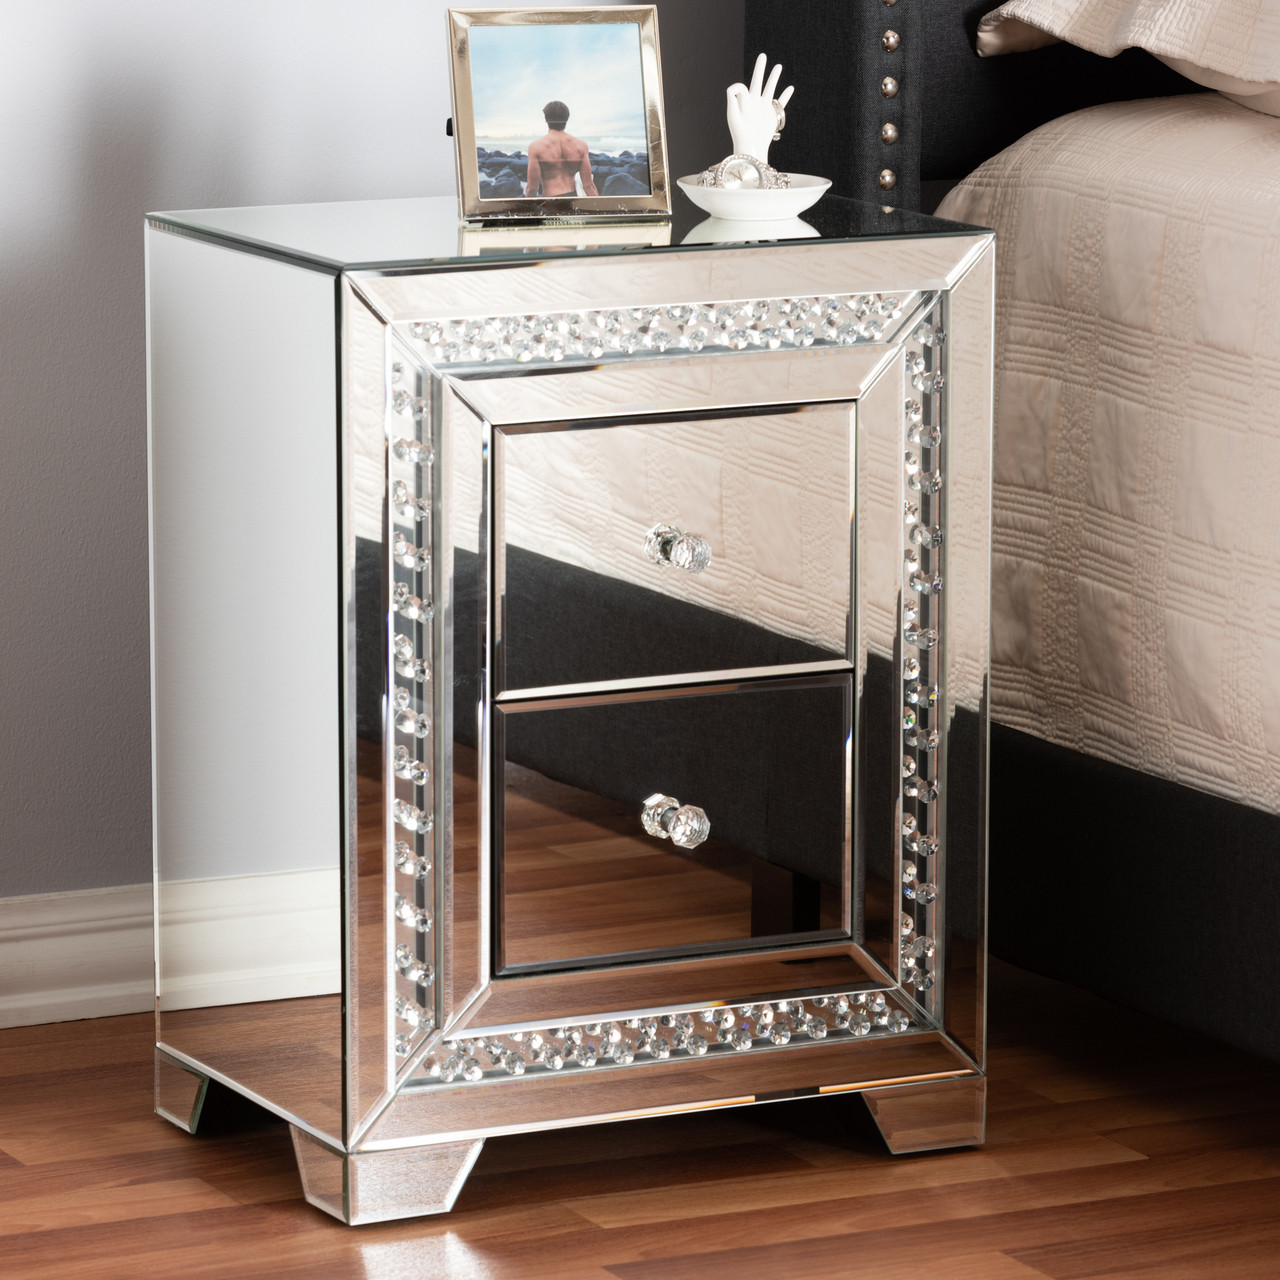 Baxton Studio Mina Modern And Contemporary Hollywood Regency Glamour Style Mirrored 2 Drawer Nightstand Bedside Table